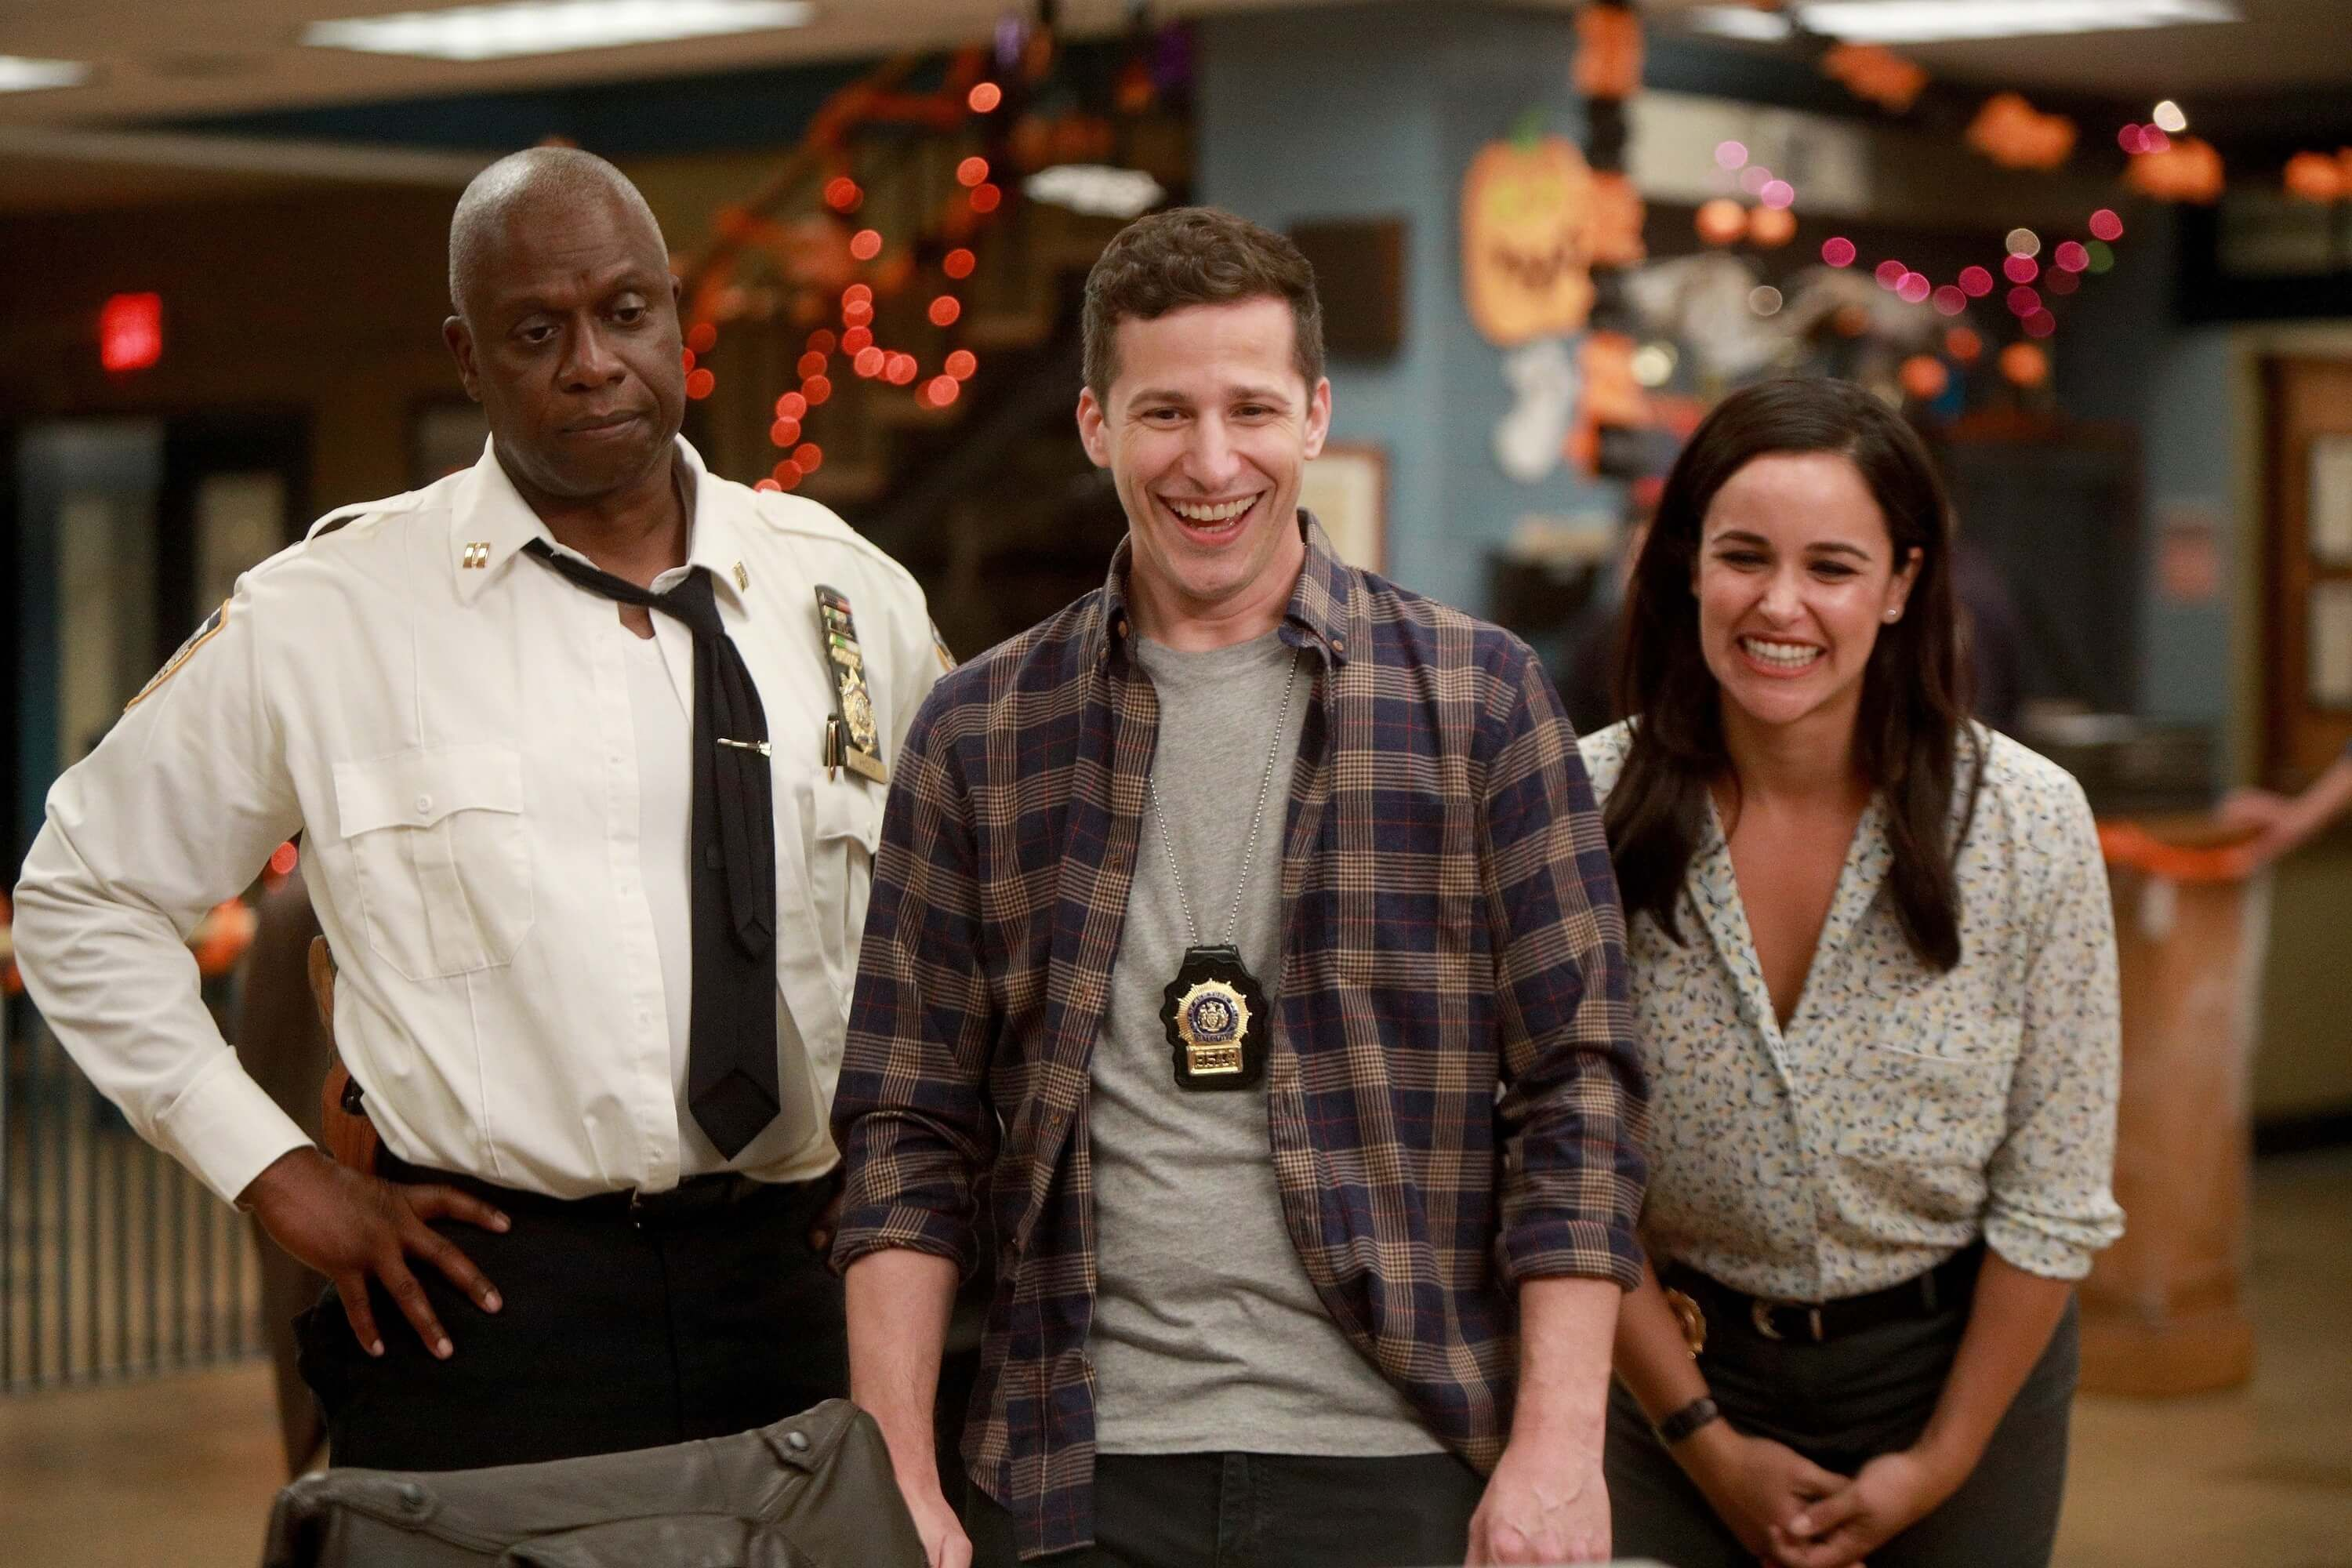 Image may contain: Netflix releases in March, march, new, tv show, Netflix, best show, Brooklyn 99, Pants, Shirt, Apparel, Clothing, Person, Human